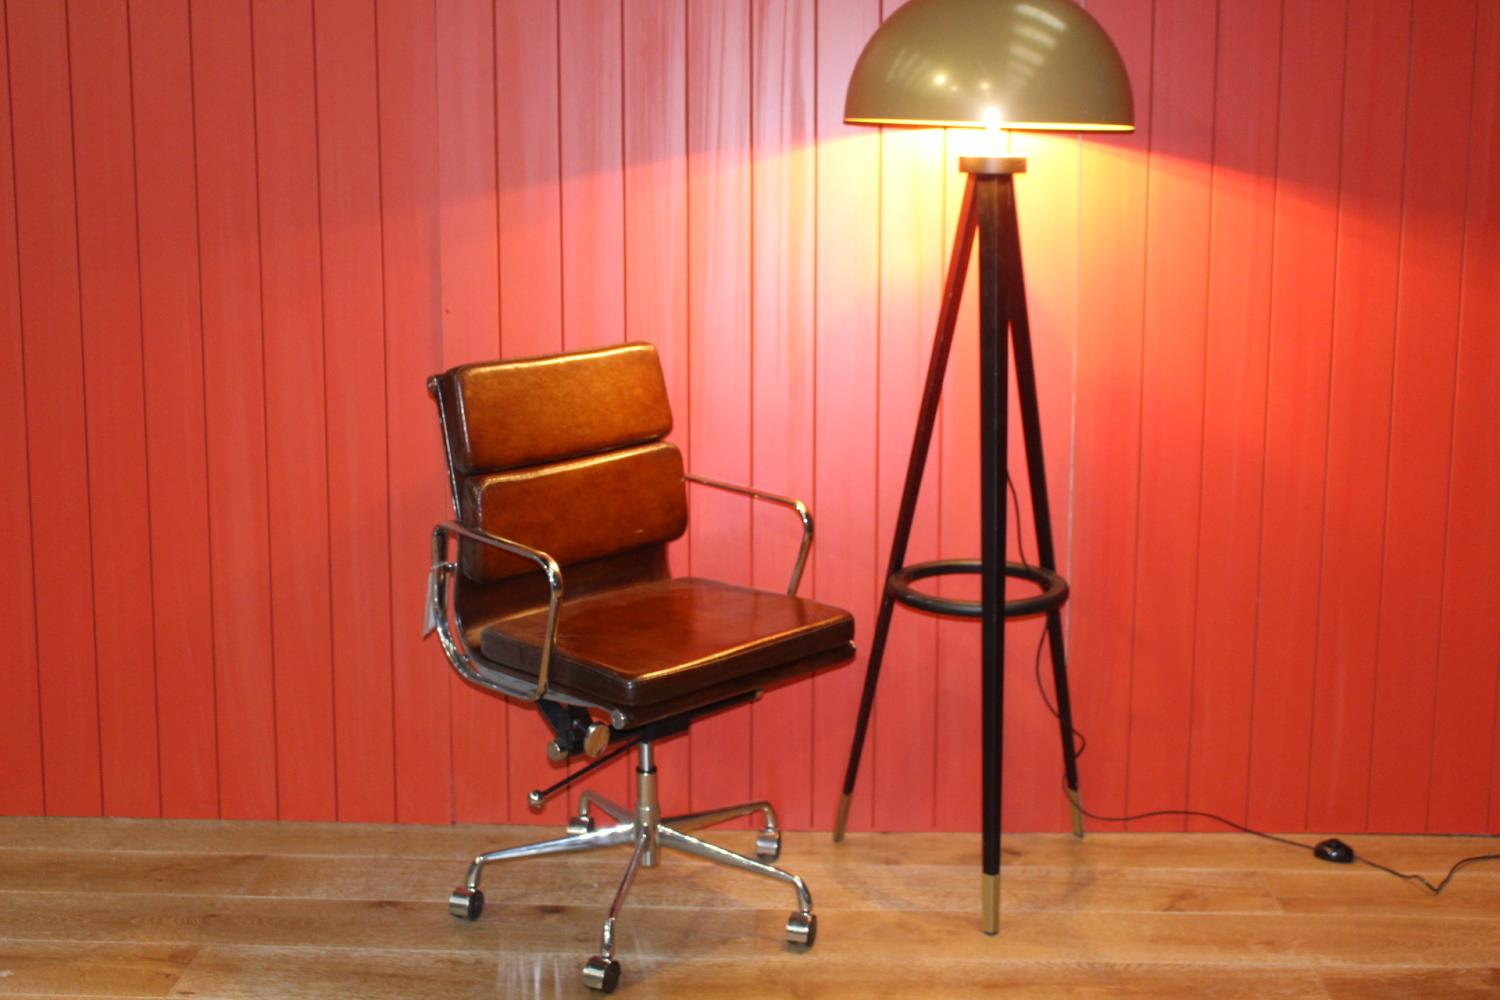 Revolving leather and chrome office chair - Image 2 of 2